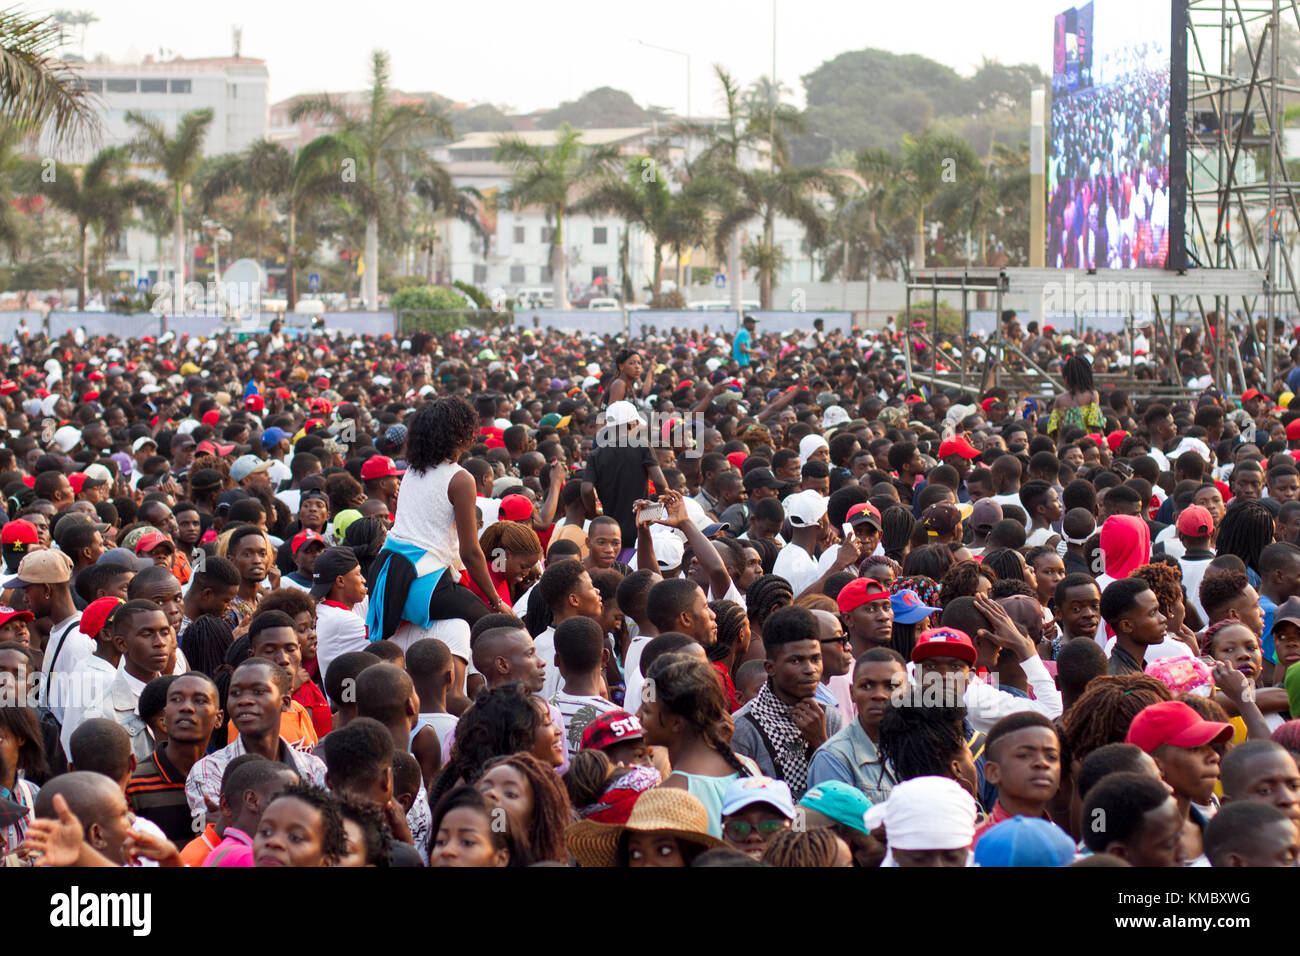 African Ethnicity crowd waiting for show in Luanda, Angola - Stock Image